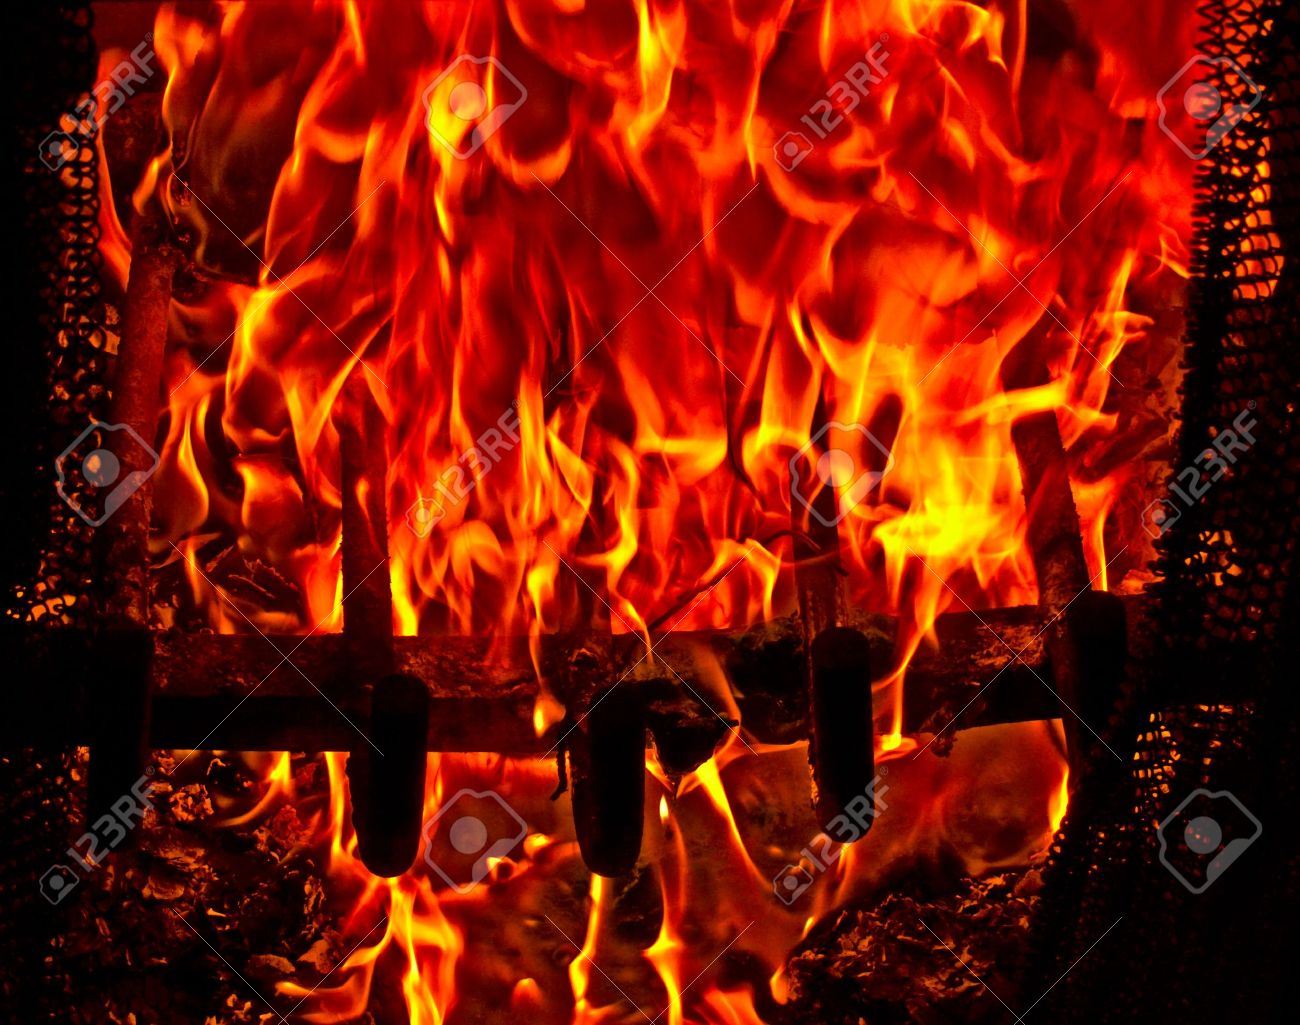 """Acting Fire Chief says: """"suspected arson"""" in February marks 3rdfire incident"""